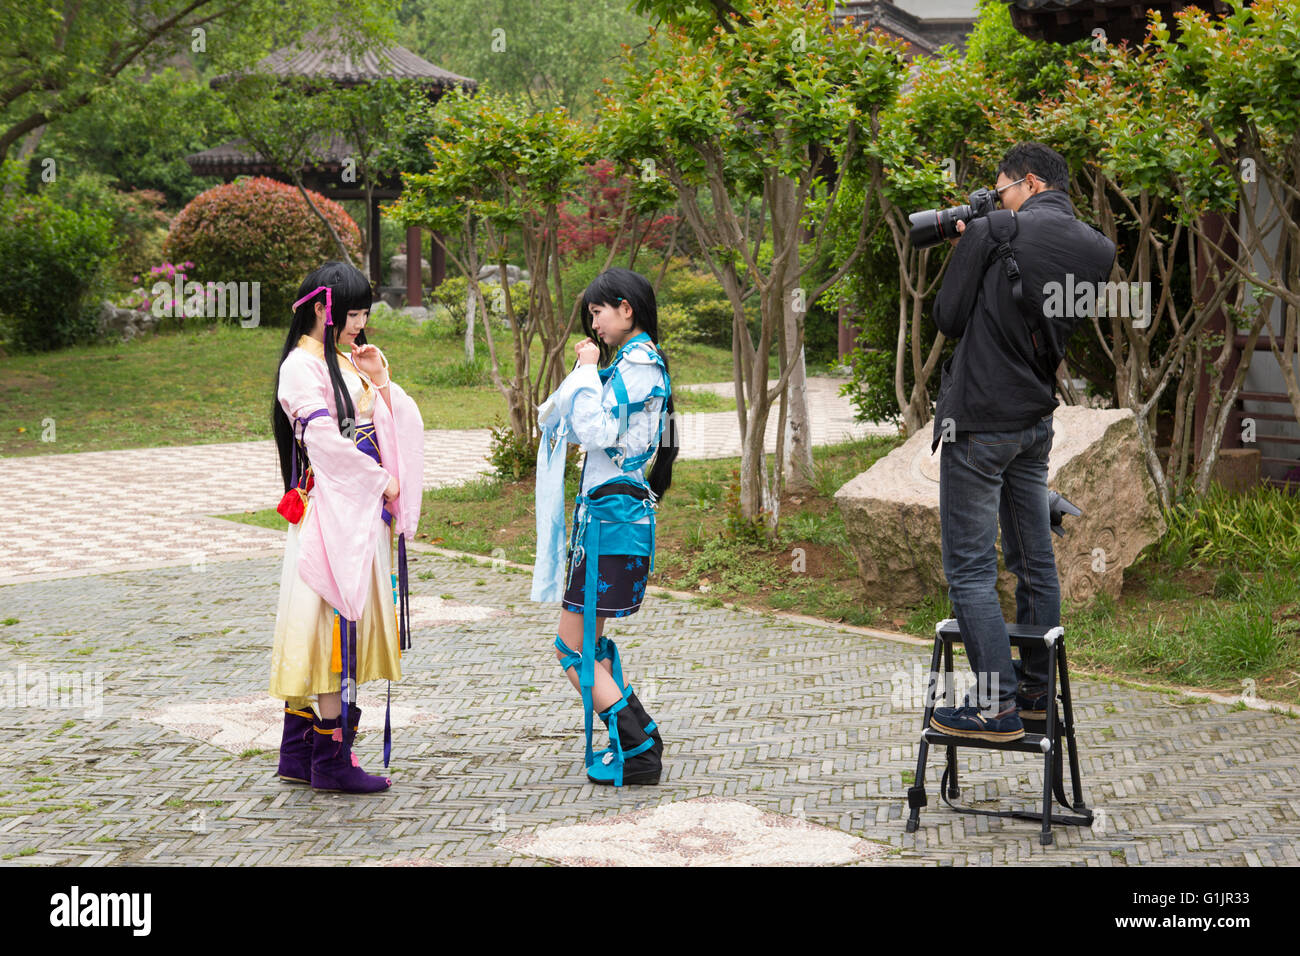 Scene with Chinese photographer at work with two cosplay photo models at Xuanwu Park, youth culture in Nanjing, - Stock Image